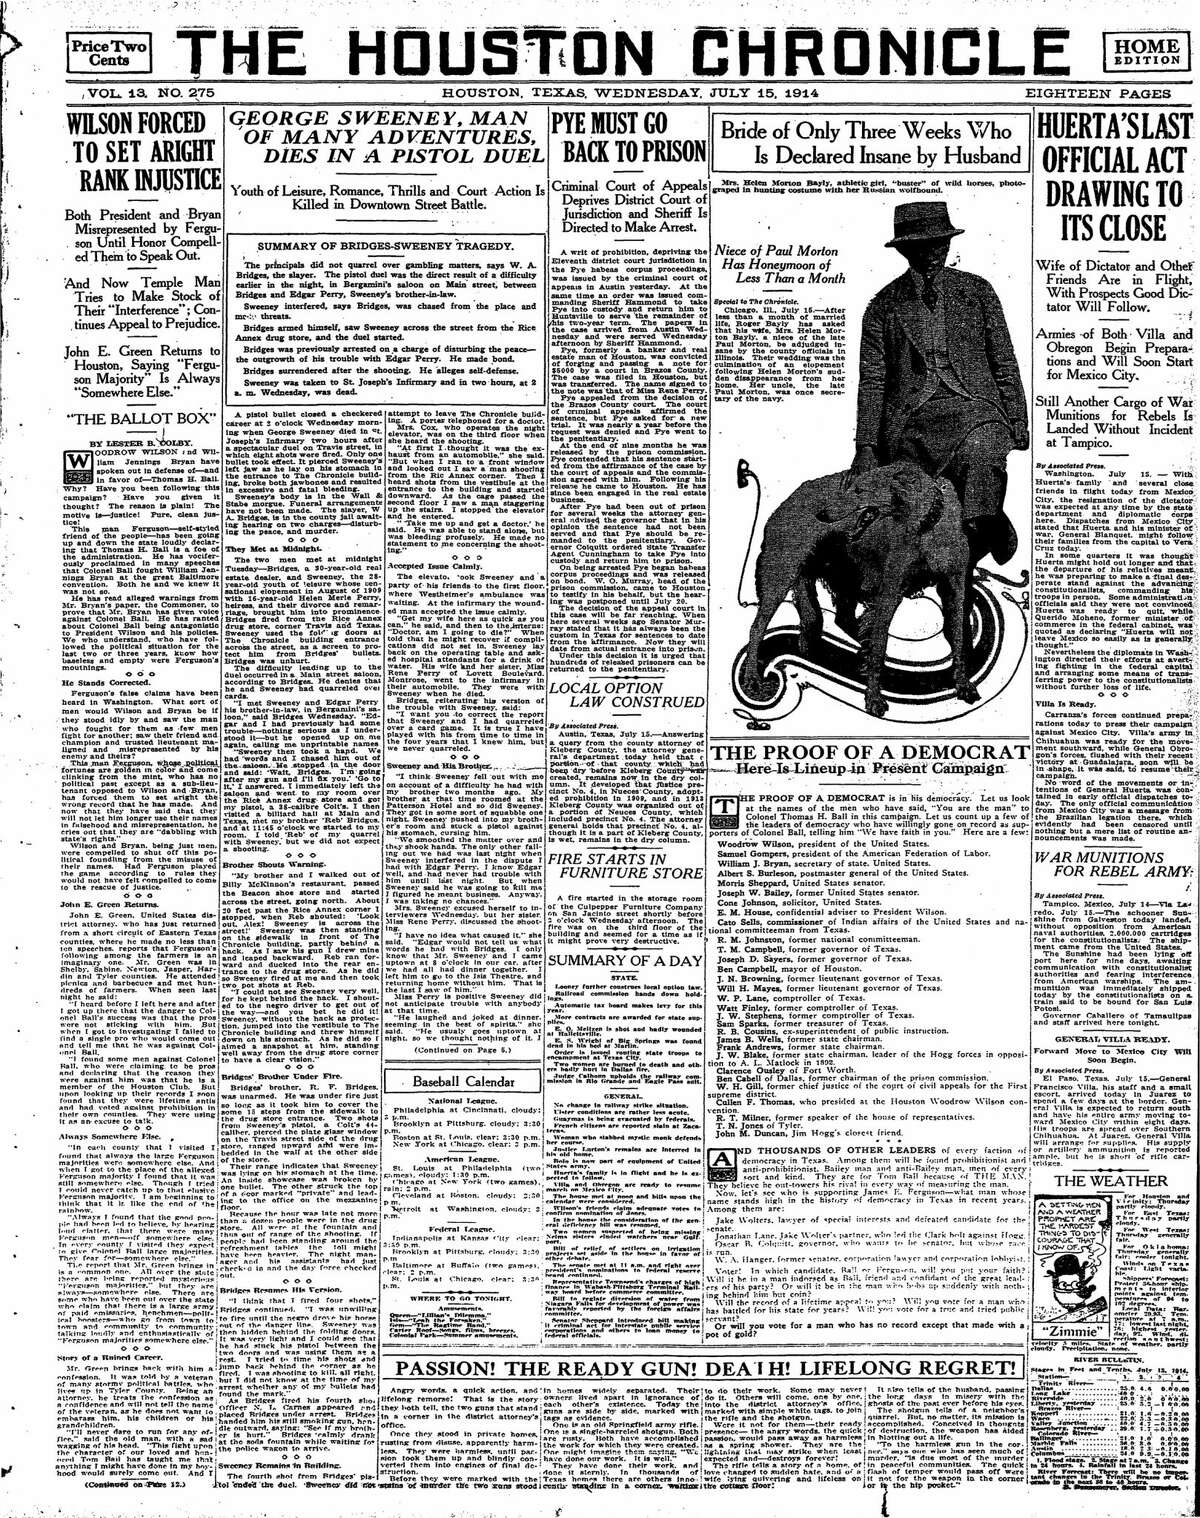 Houston Chronicle front page from July 15, 1914.